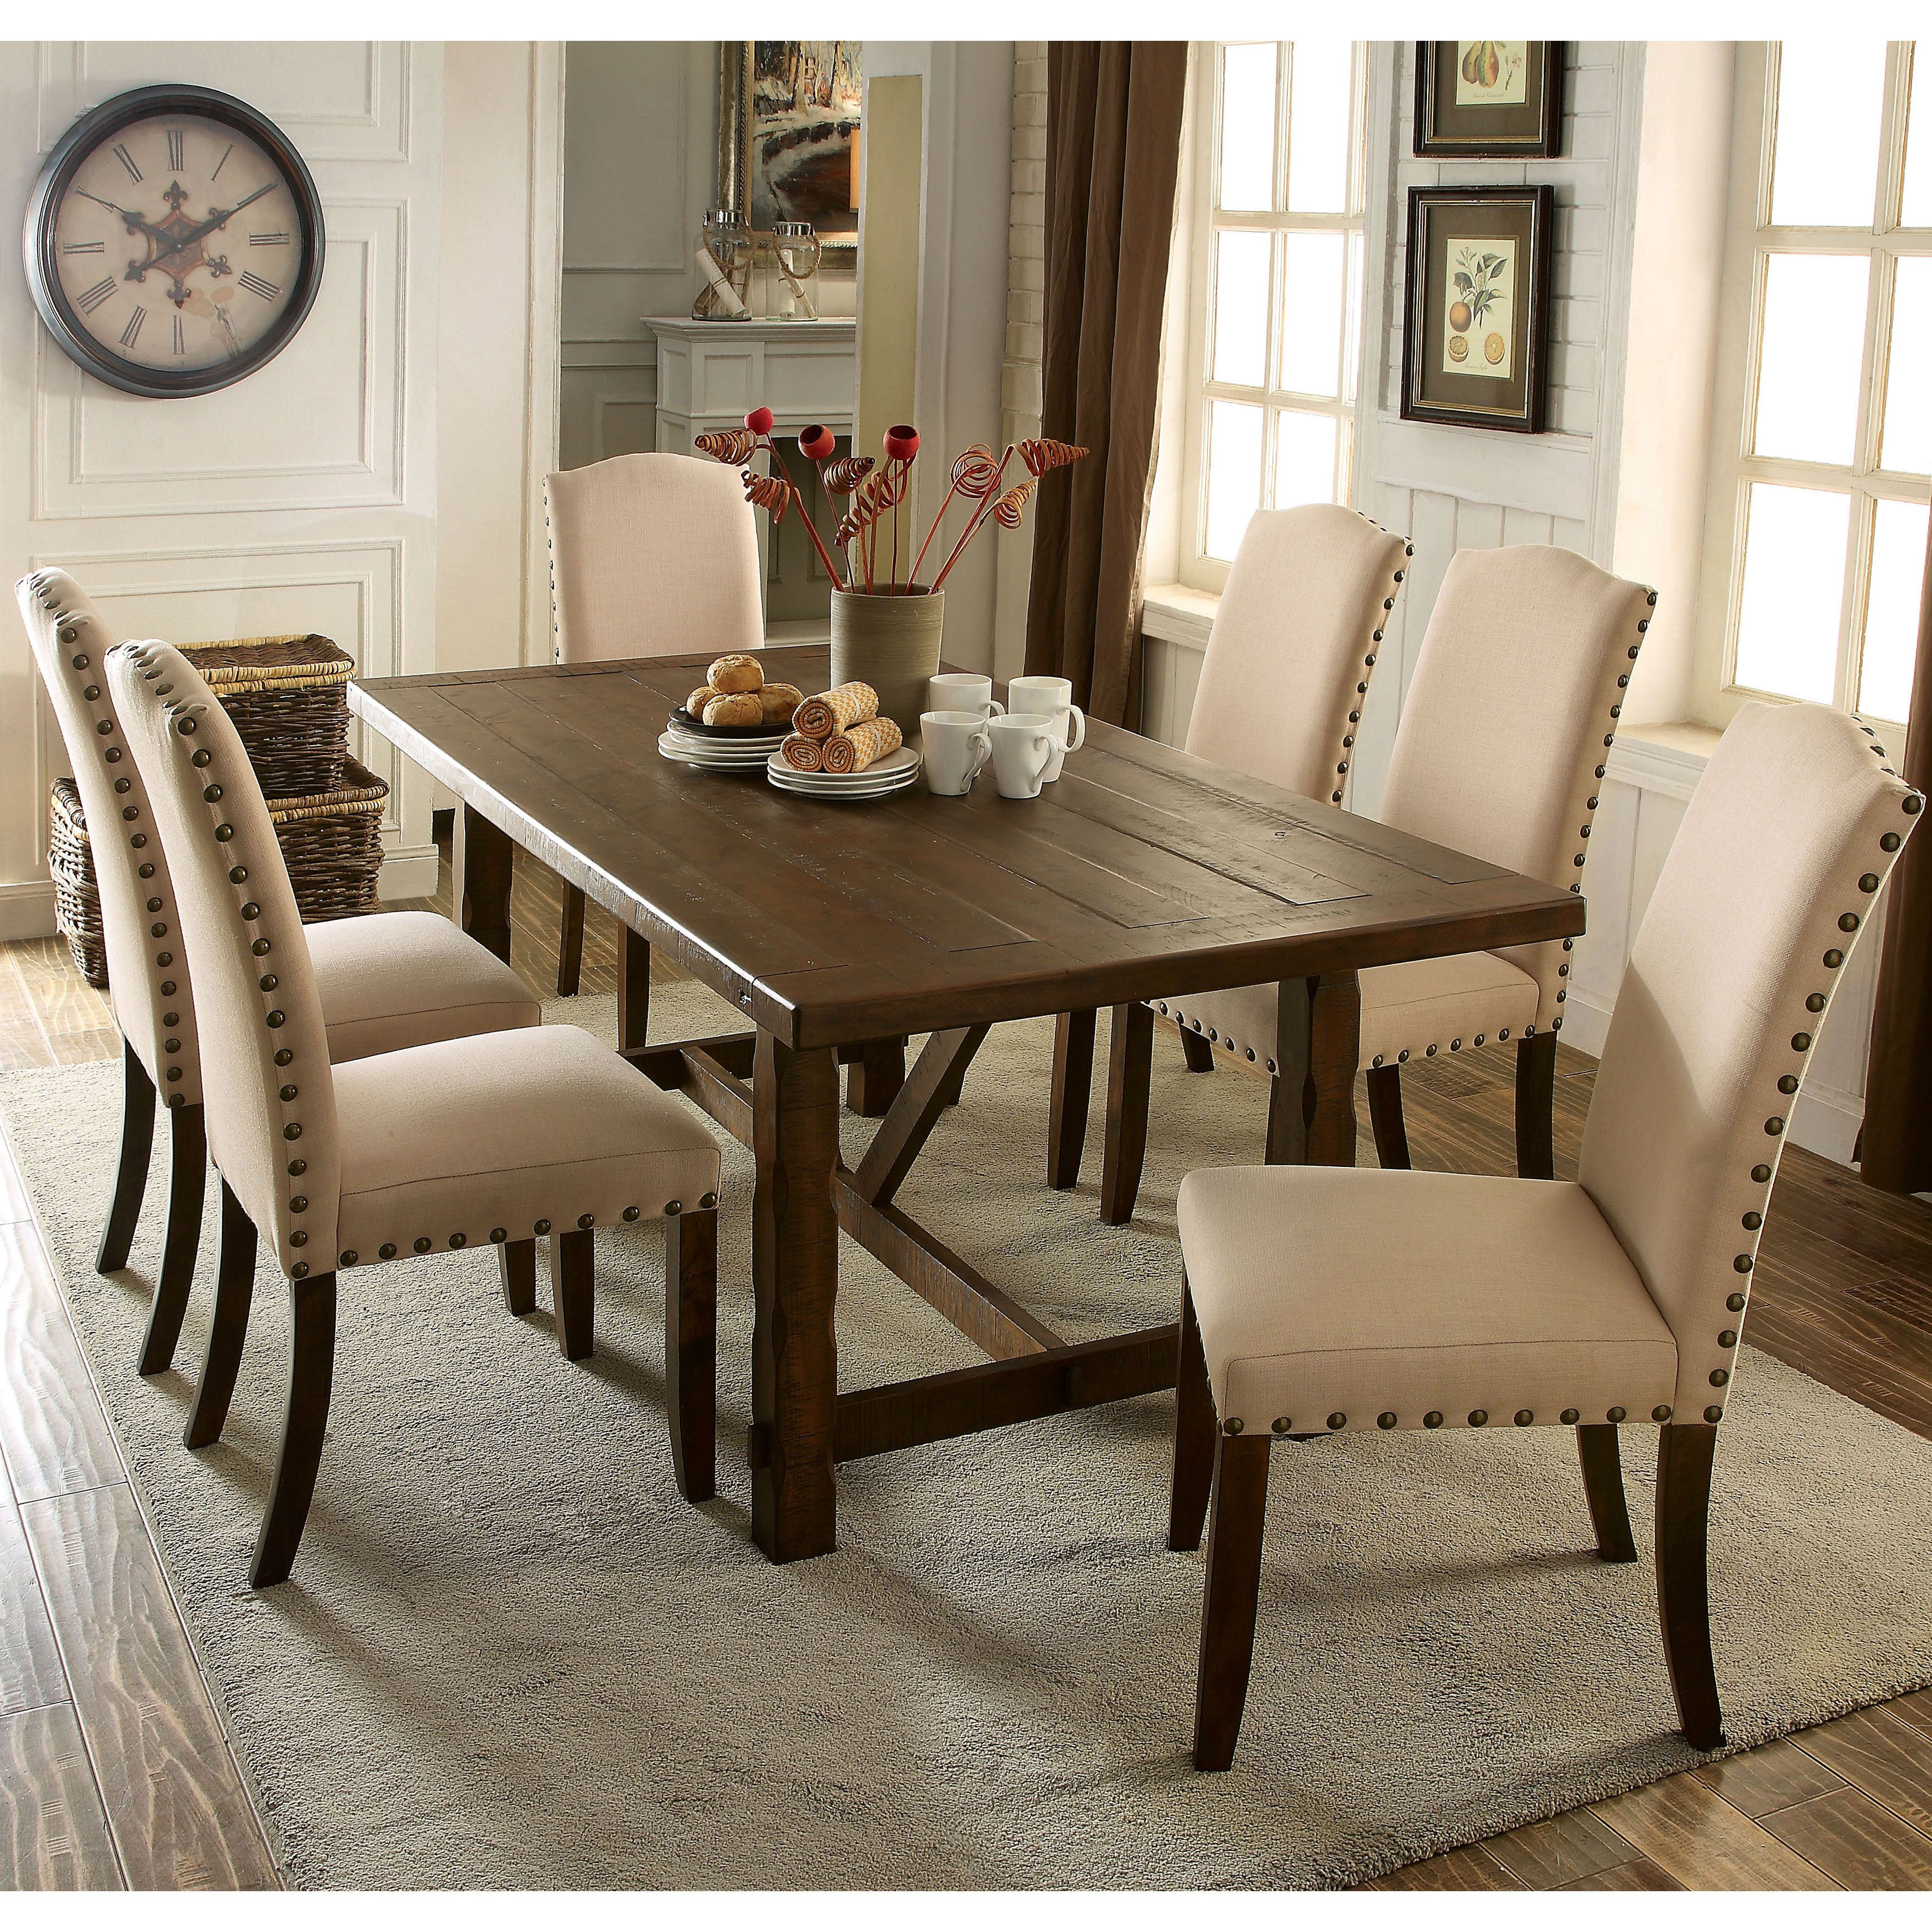 Bon Invitingly Cozy, This Seven Piece Dining Set Is A Gorgeous Display Of  Rustic And Modern Elements. The Plank Style Table Finished In Rustic Walnut  Sets The ...